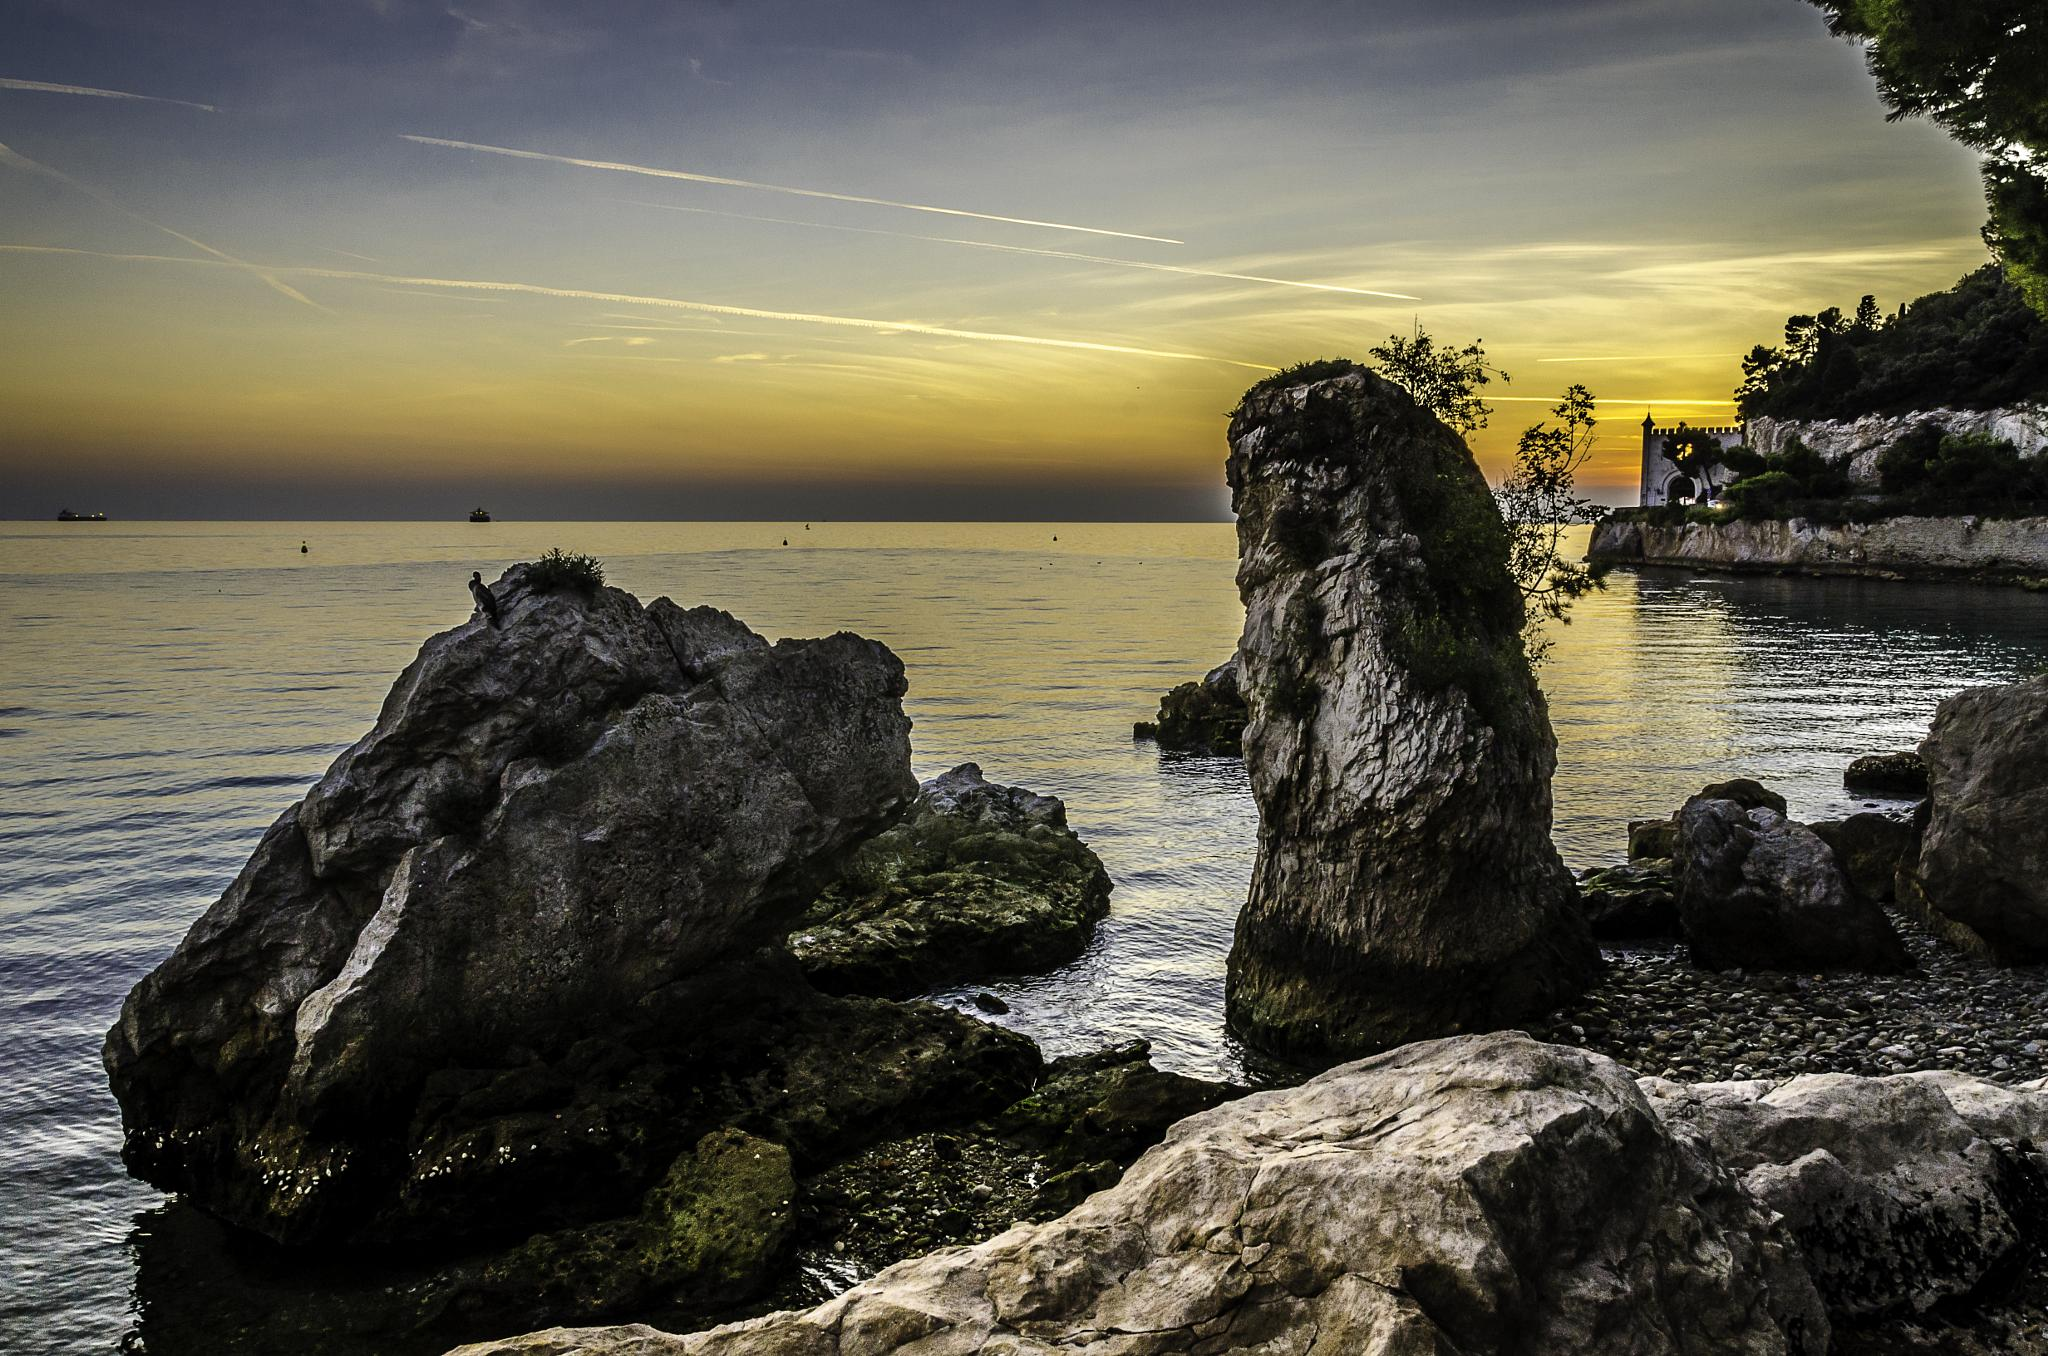 Sun set at the Adriatic coast, Trieste, Italy by DILIP KUMAR GHOSH